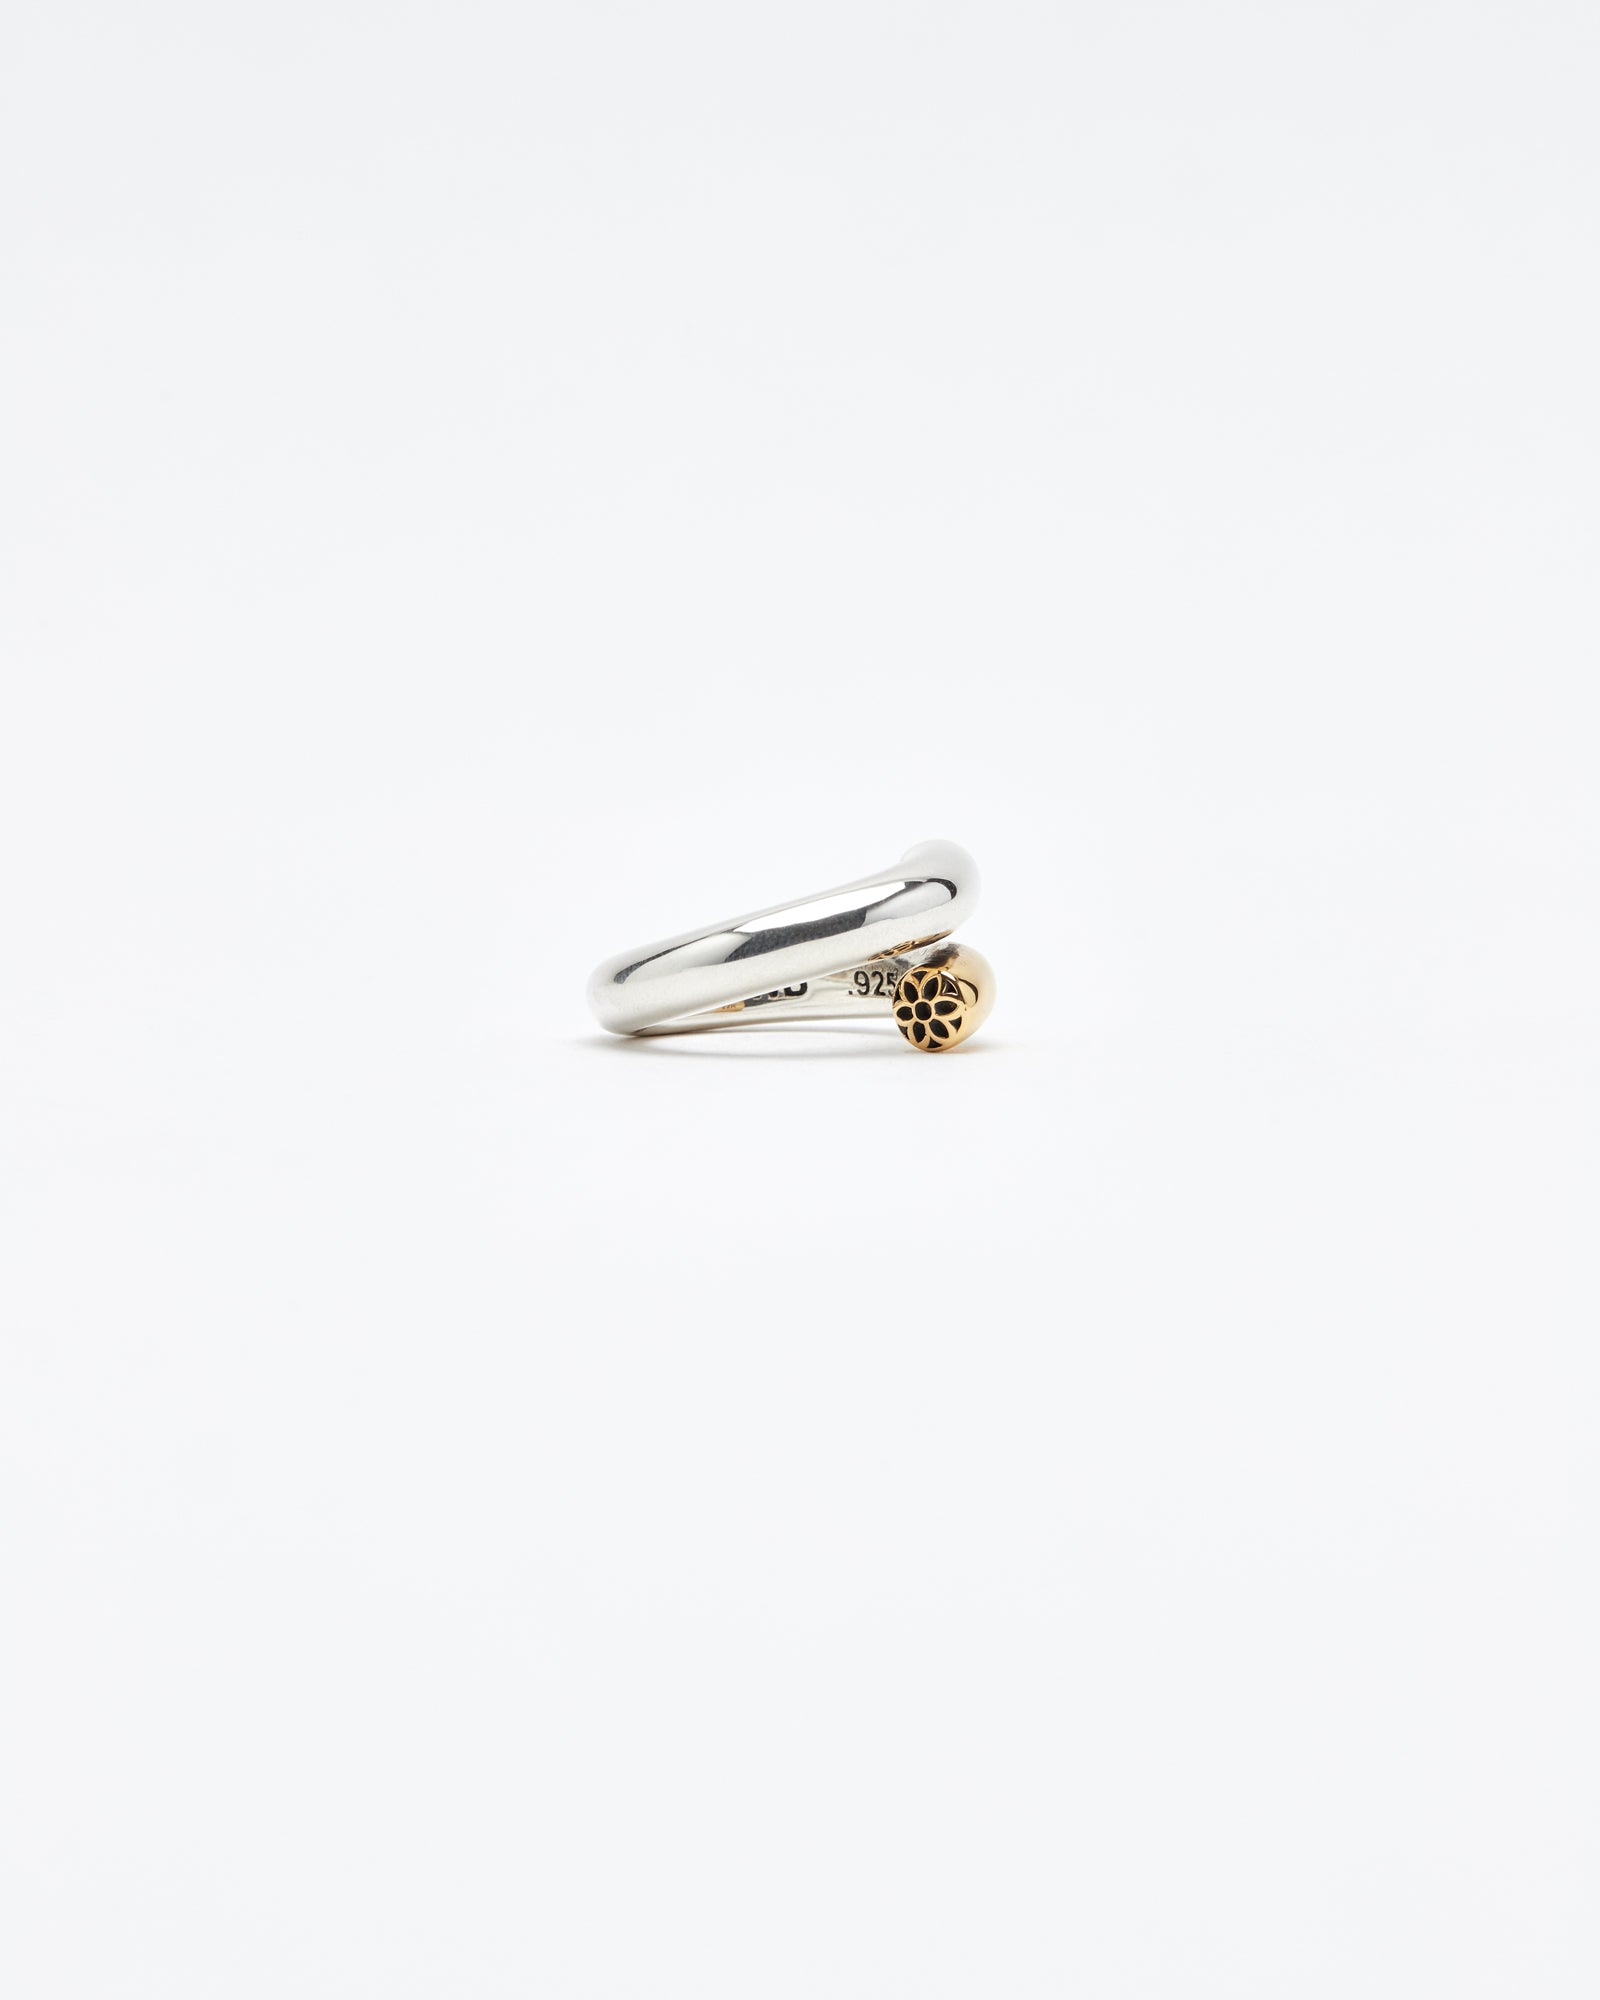 Nixson Ring, Just the Tip, Sterling & 22K, Size 9